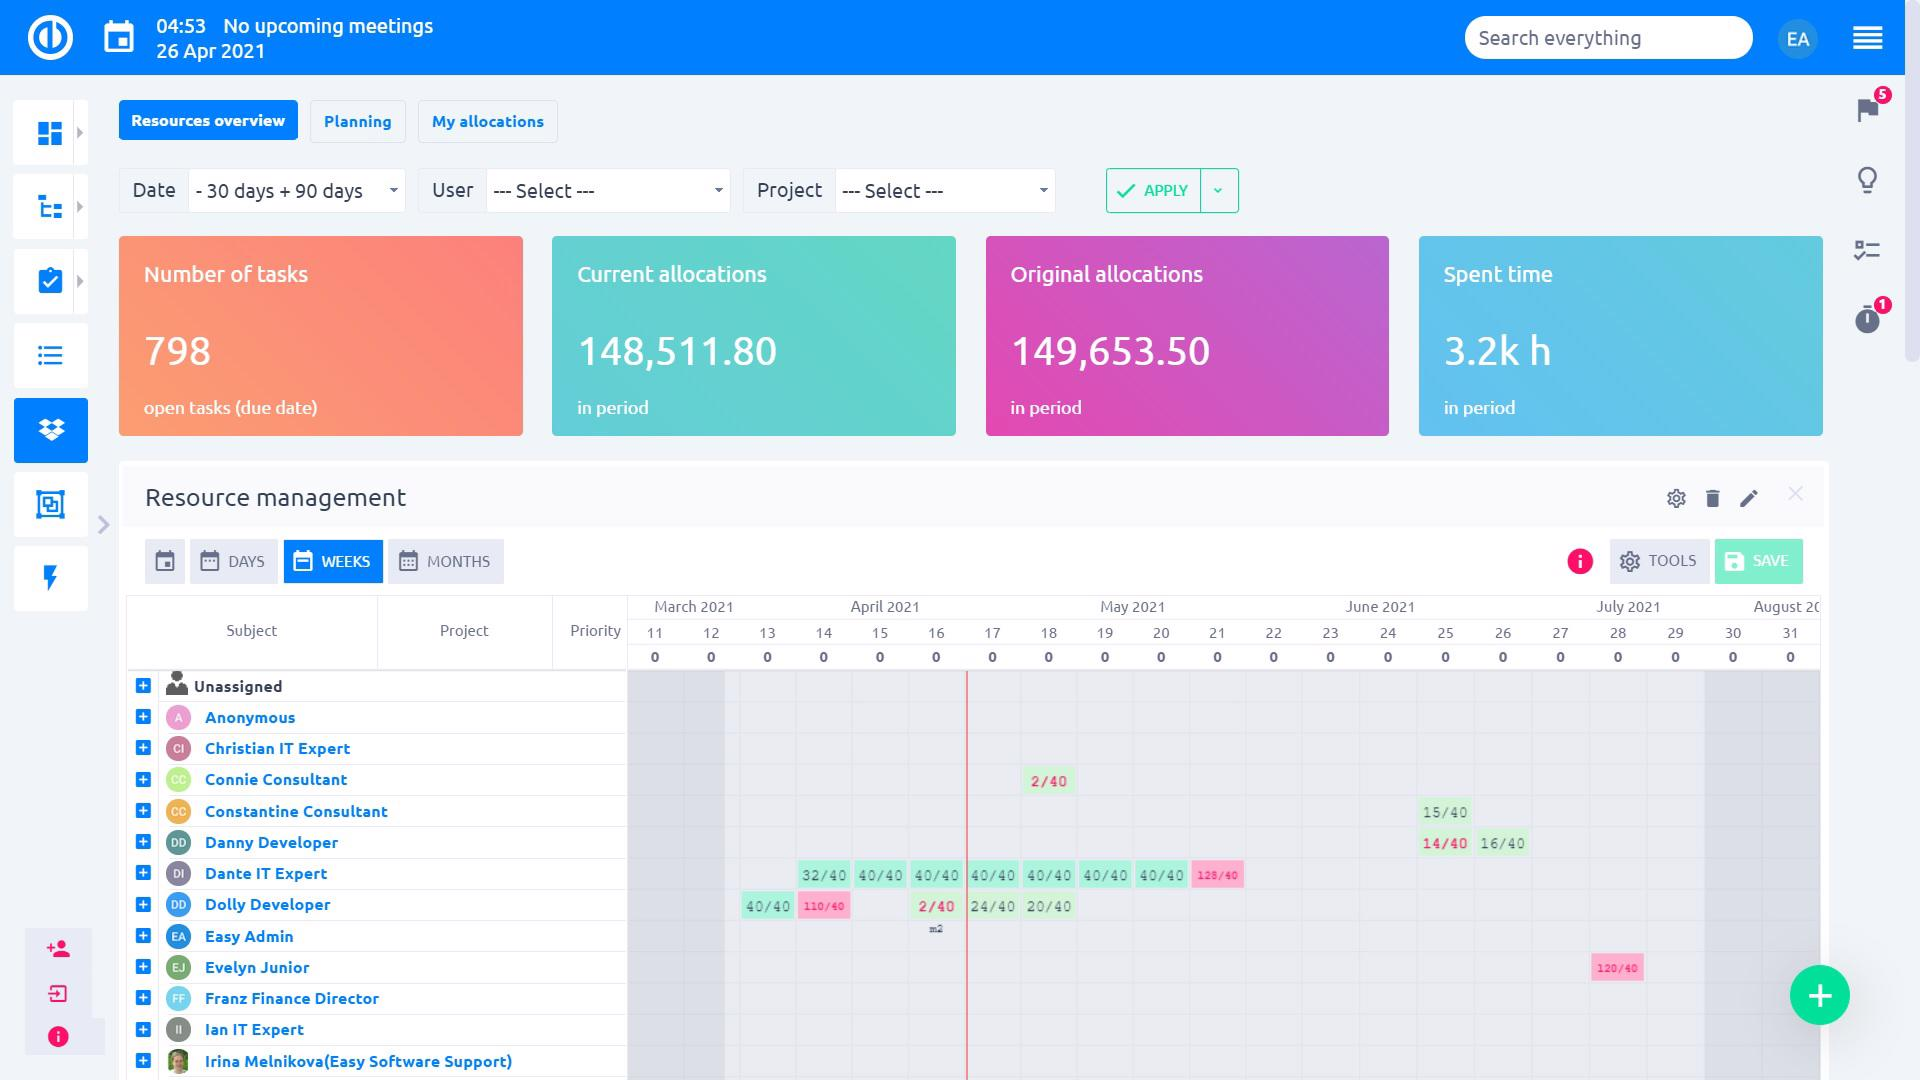 Easy Redmine 2018 - Resource manager dashboard